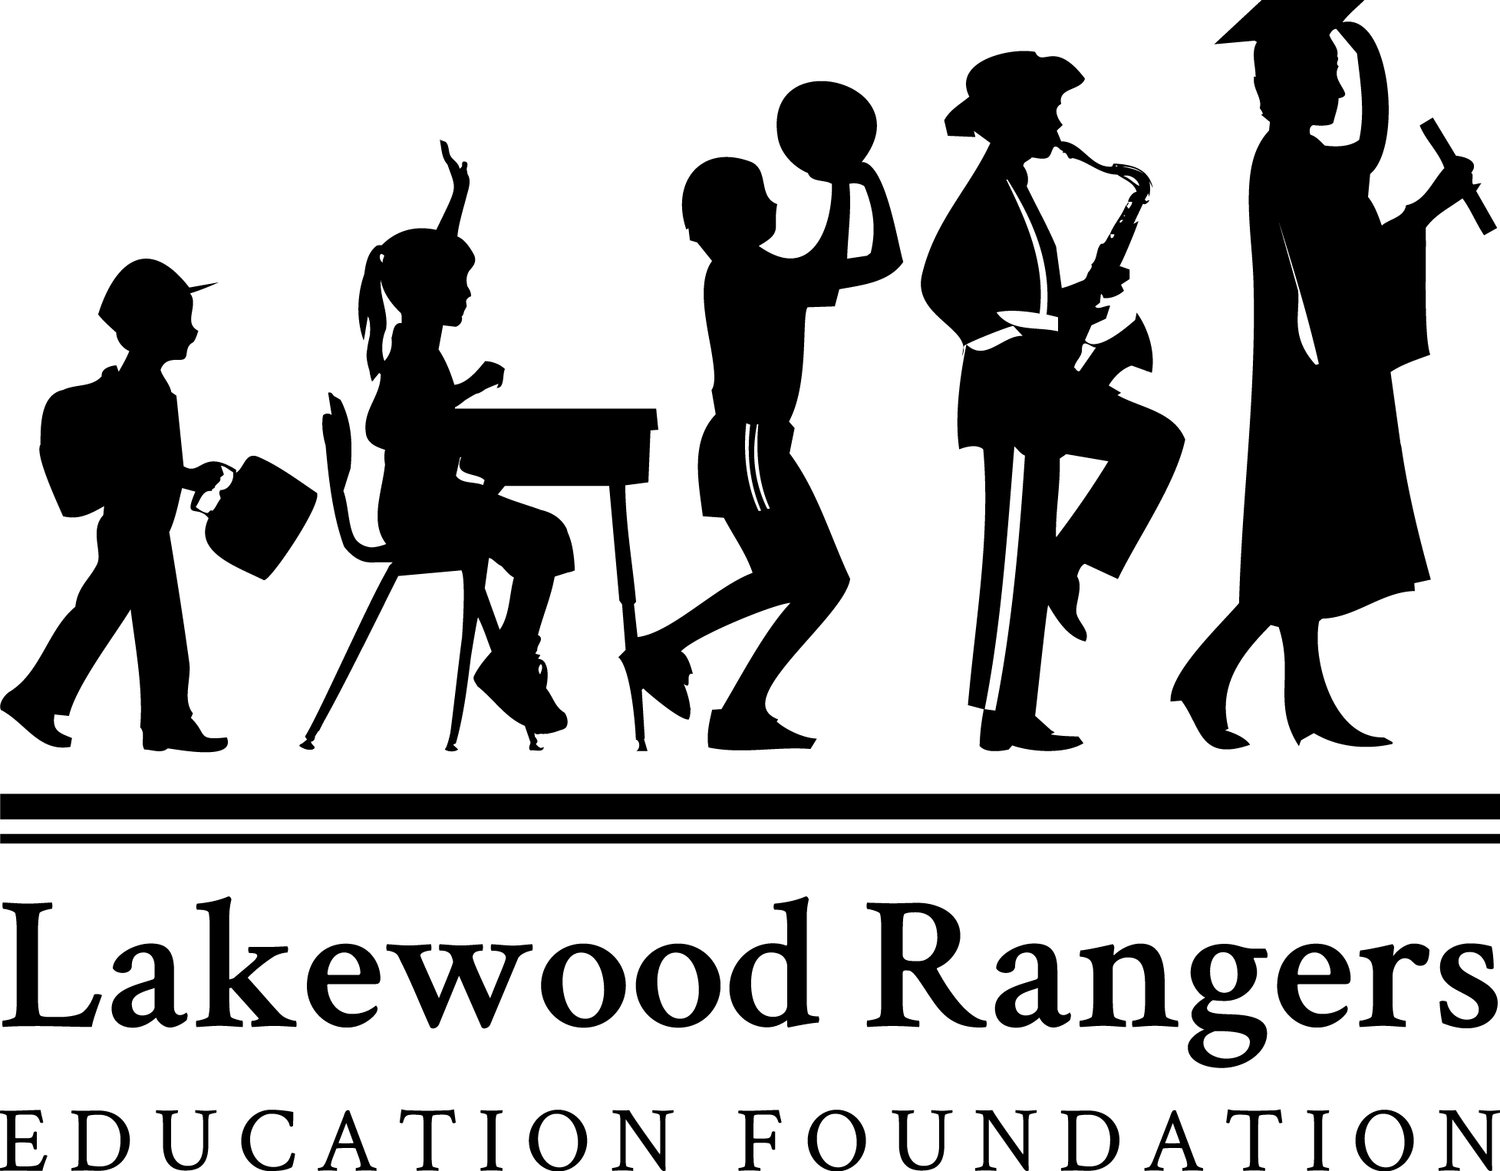 Lakewood Rangers Education Foundation